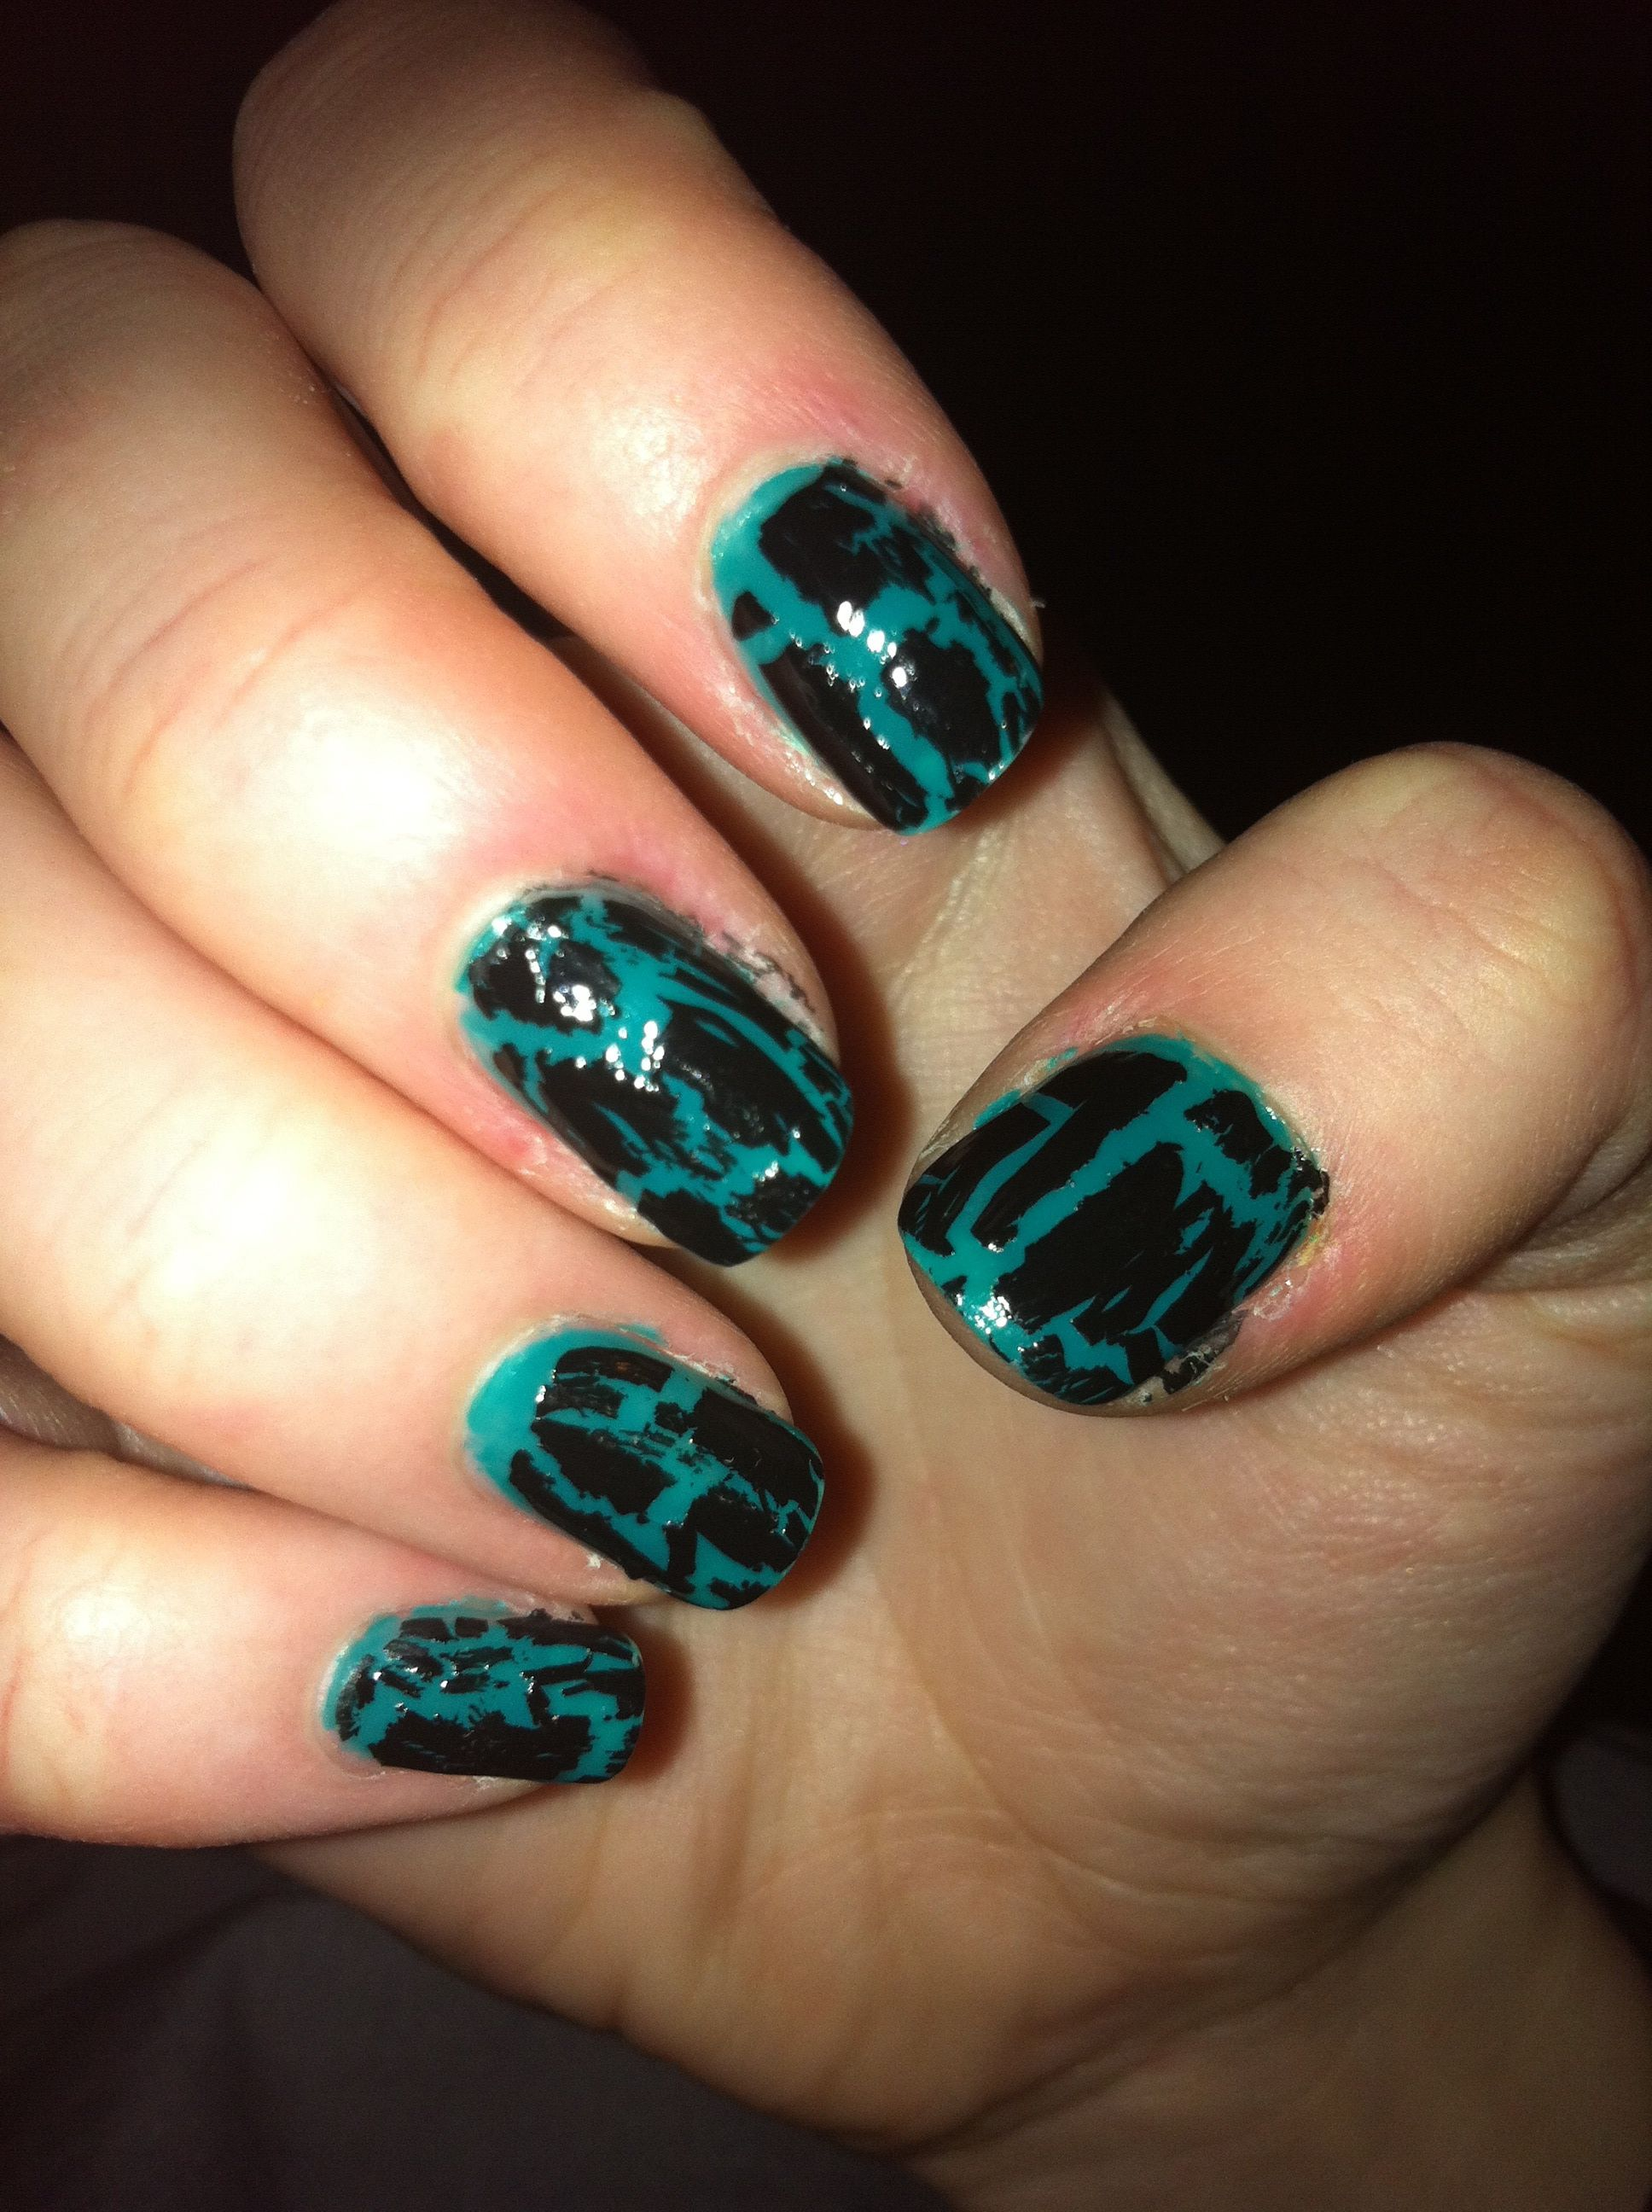 Crackle - Black and Teal